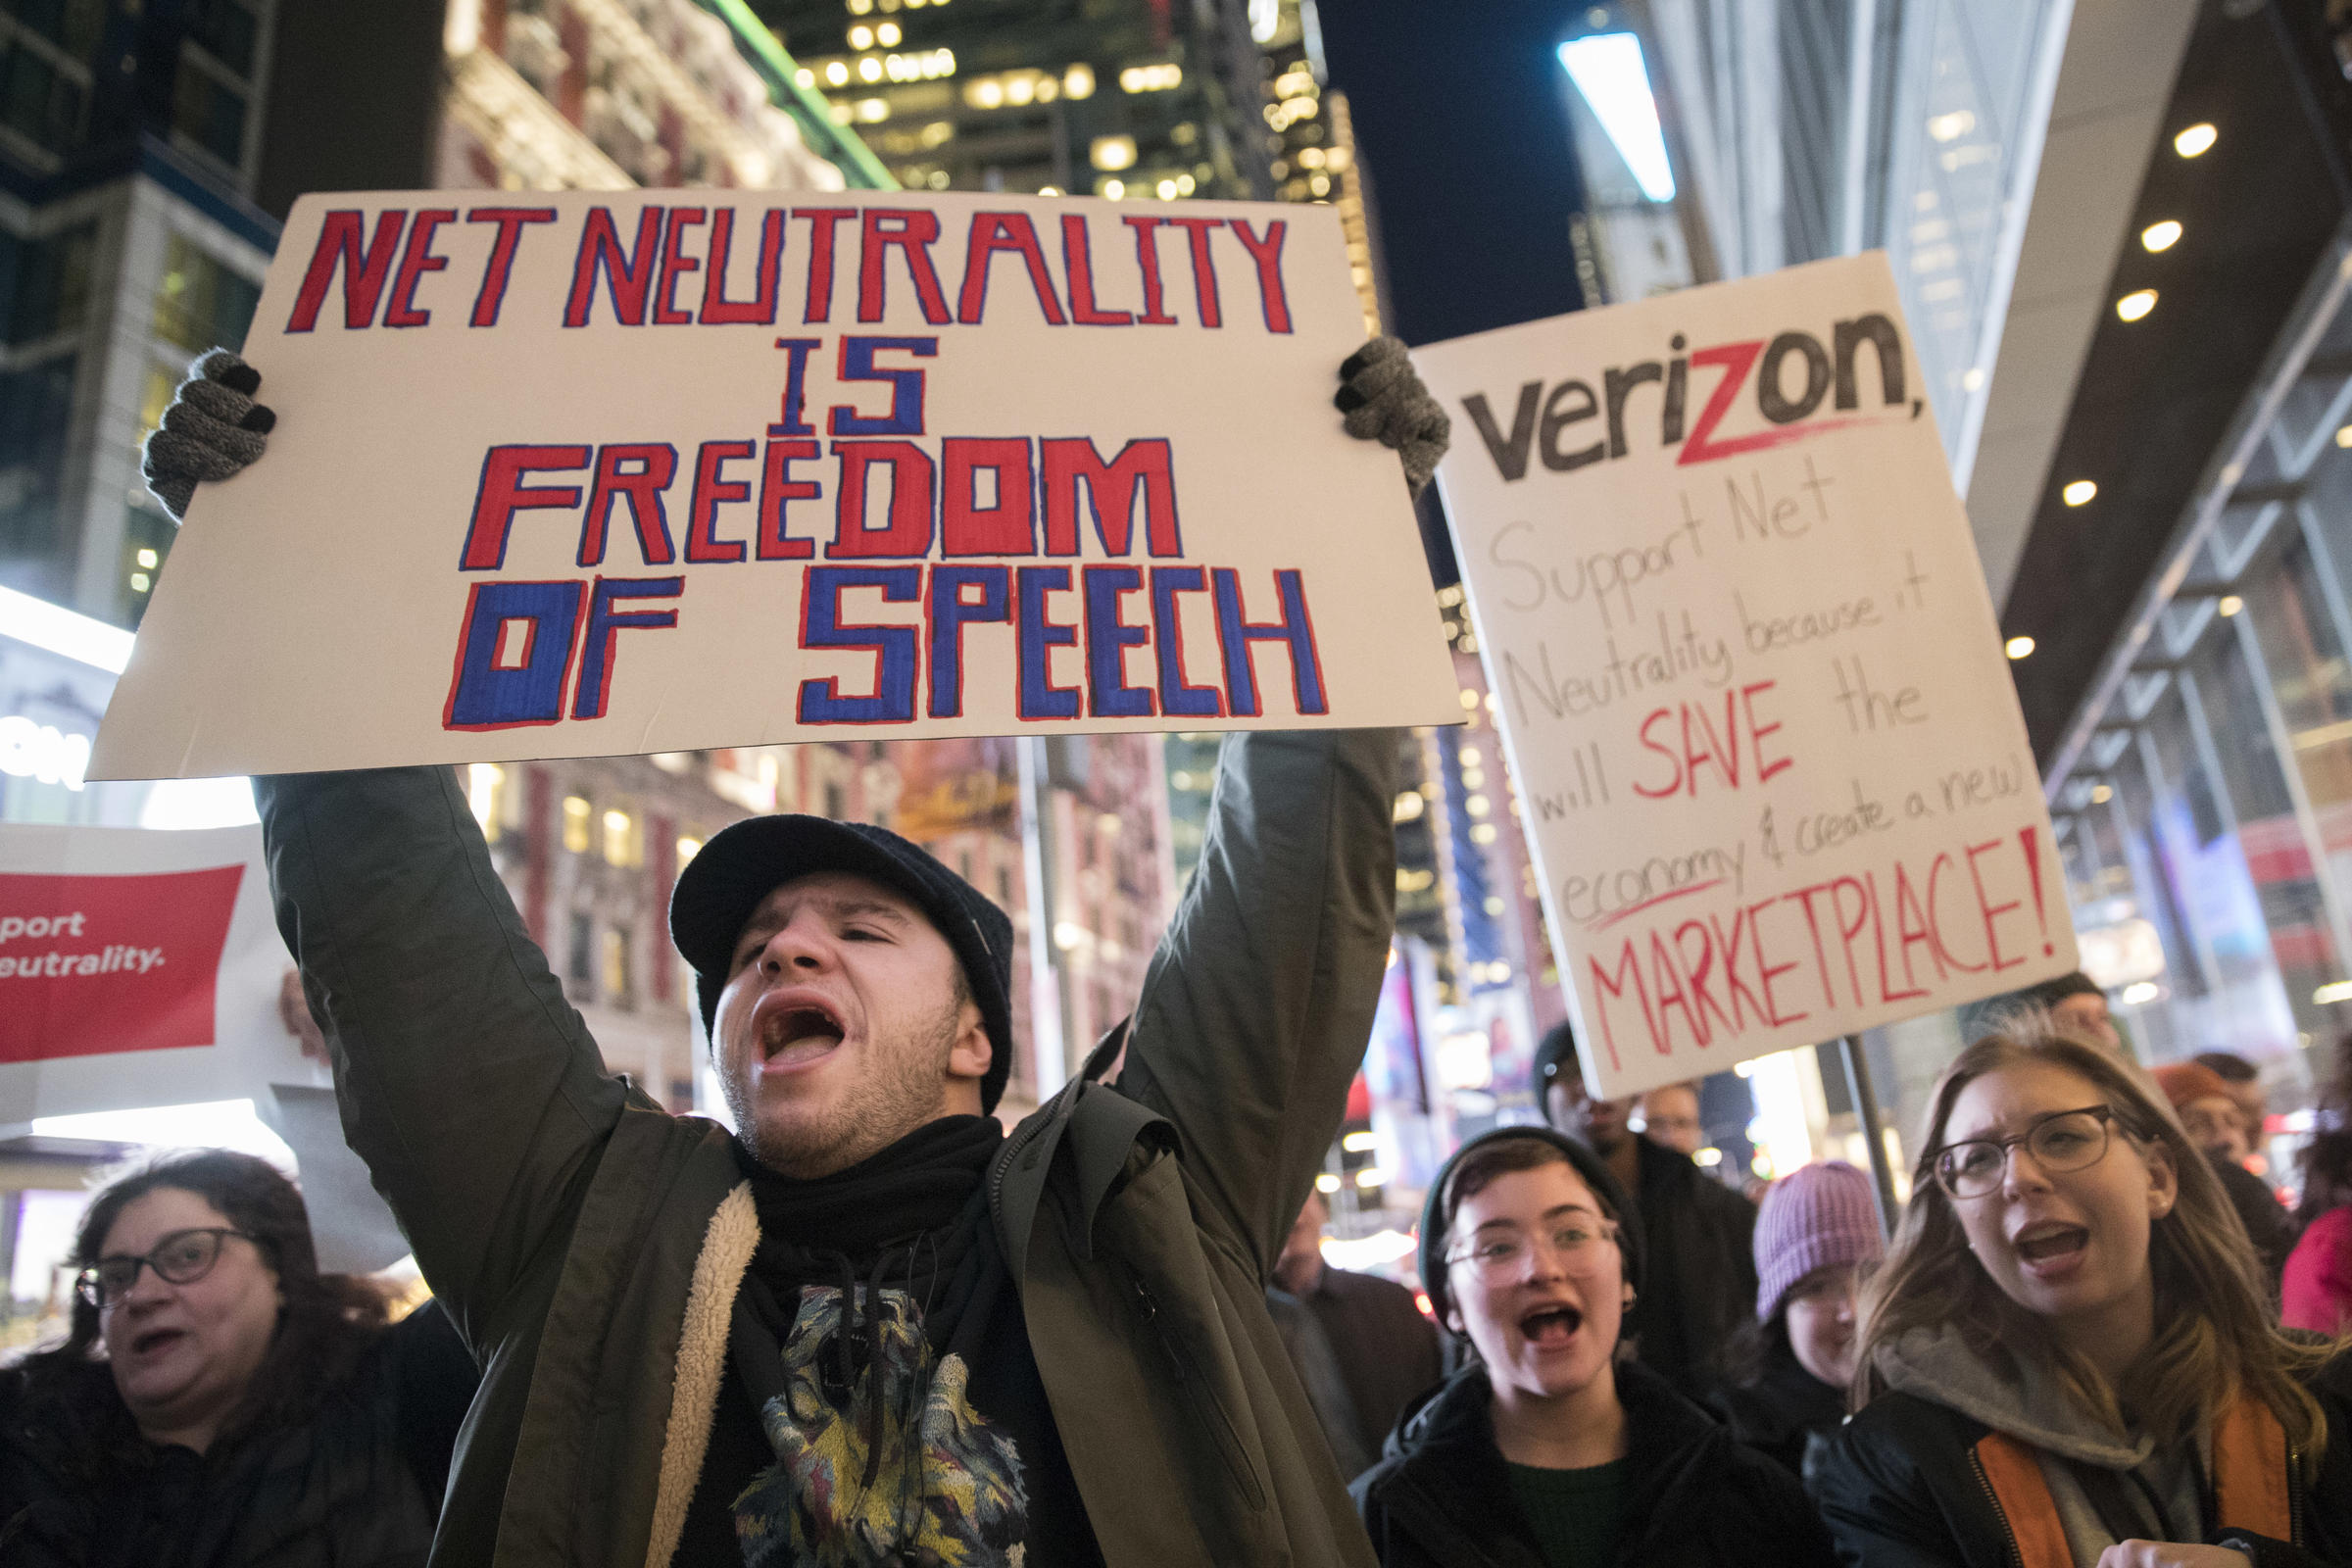 Washington among 22 states suing over FCC's net neutrality repeal